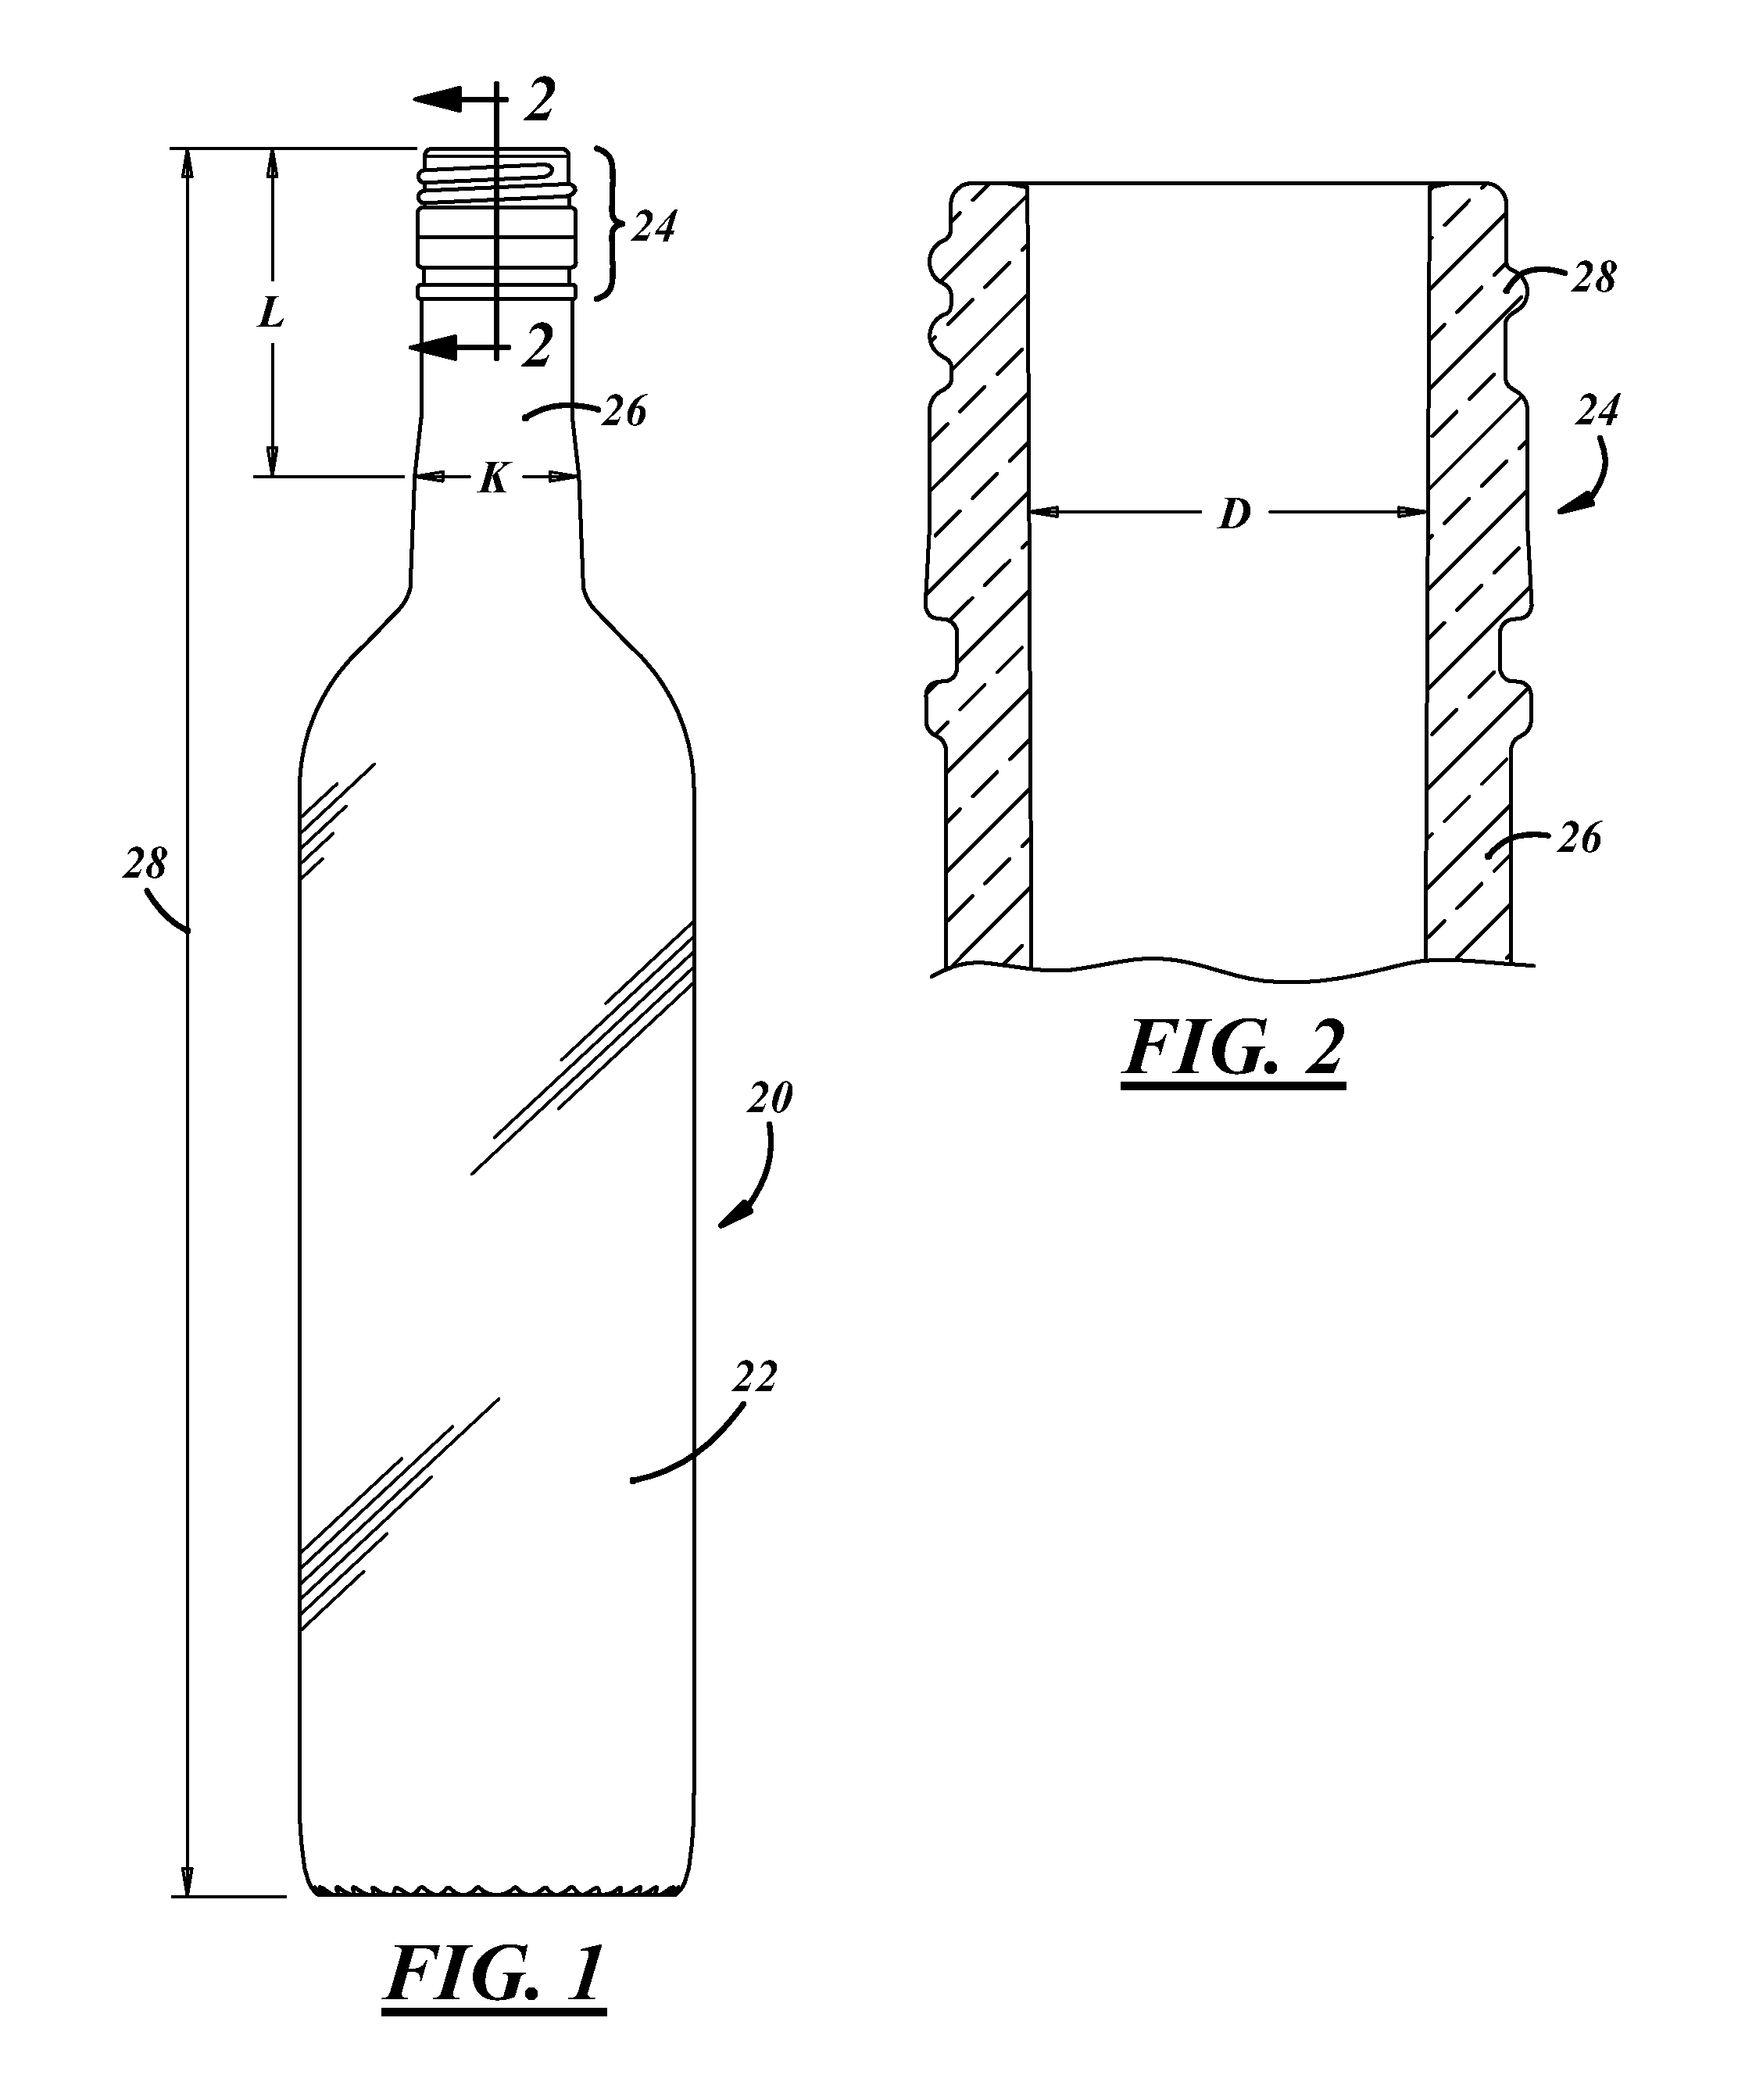 Plastic Bottle Neck Dimensions Pictures To Pin On